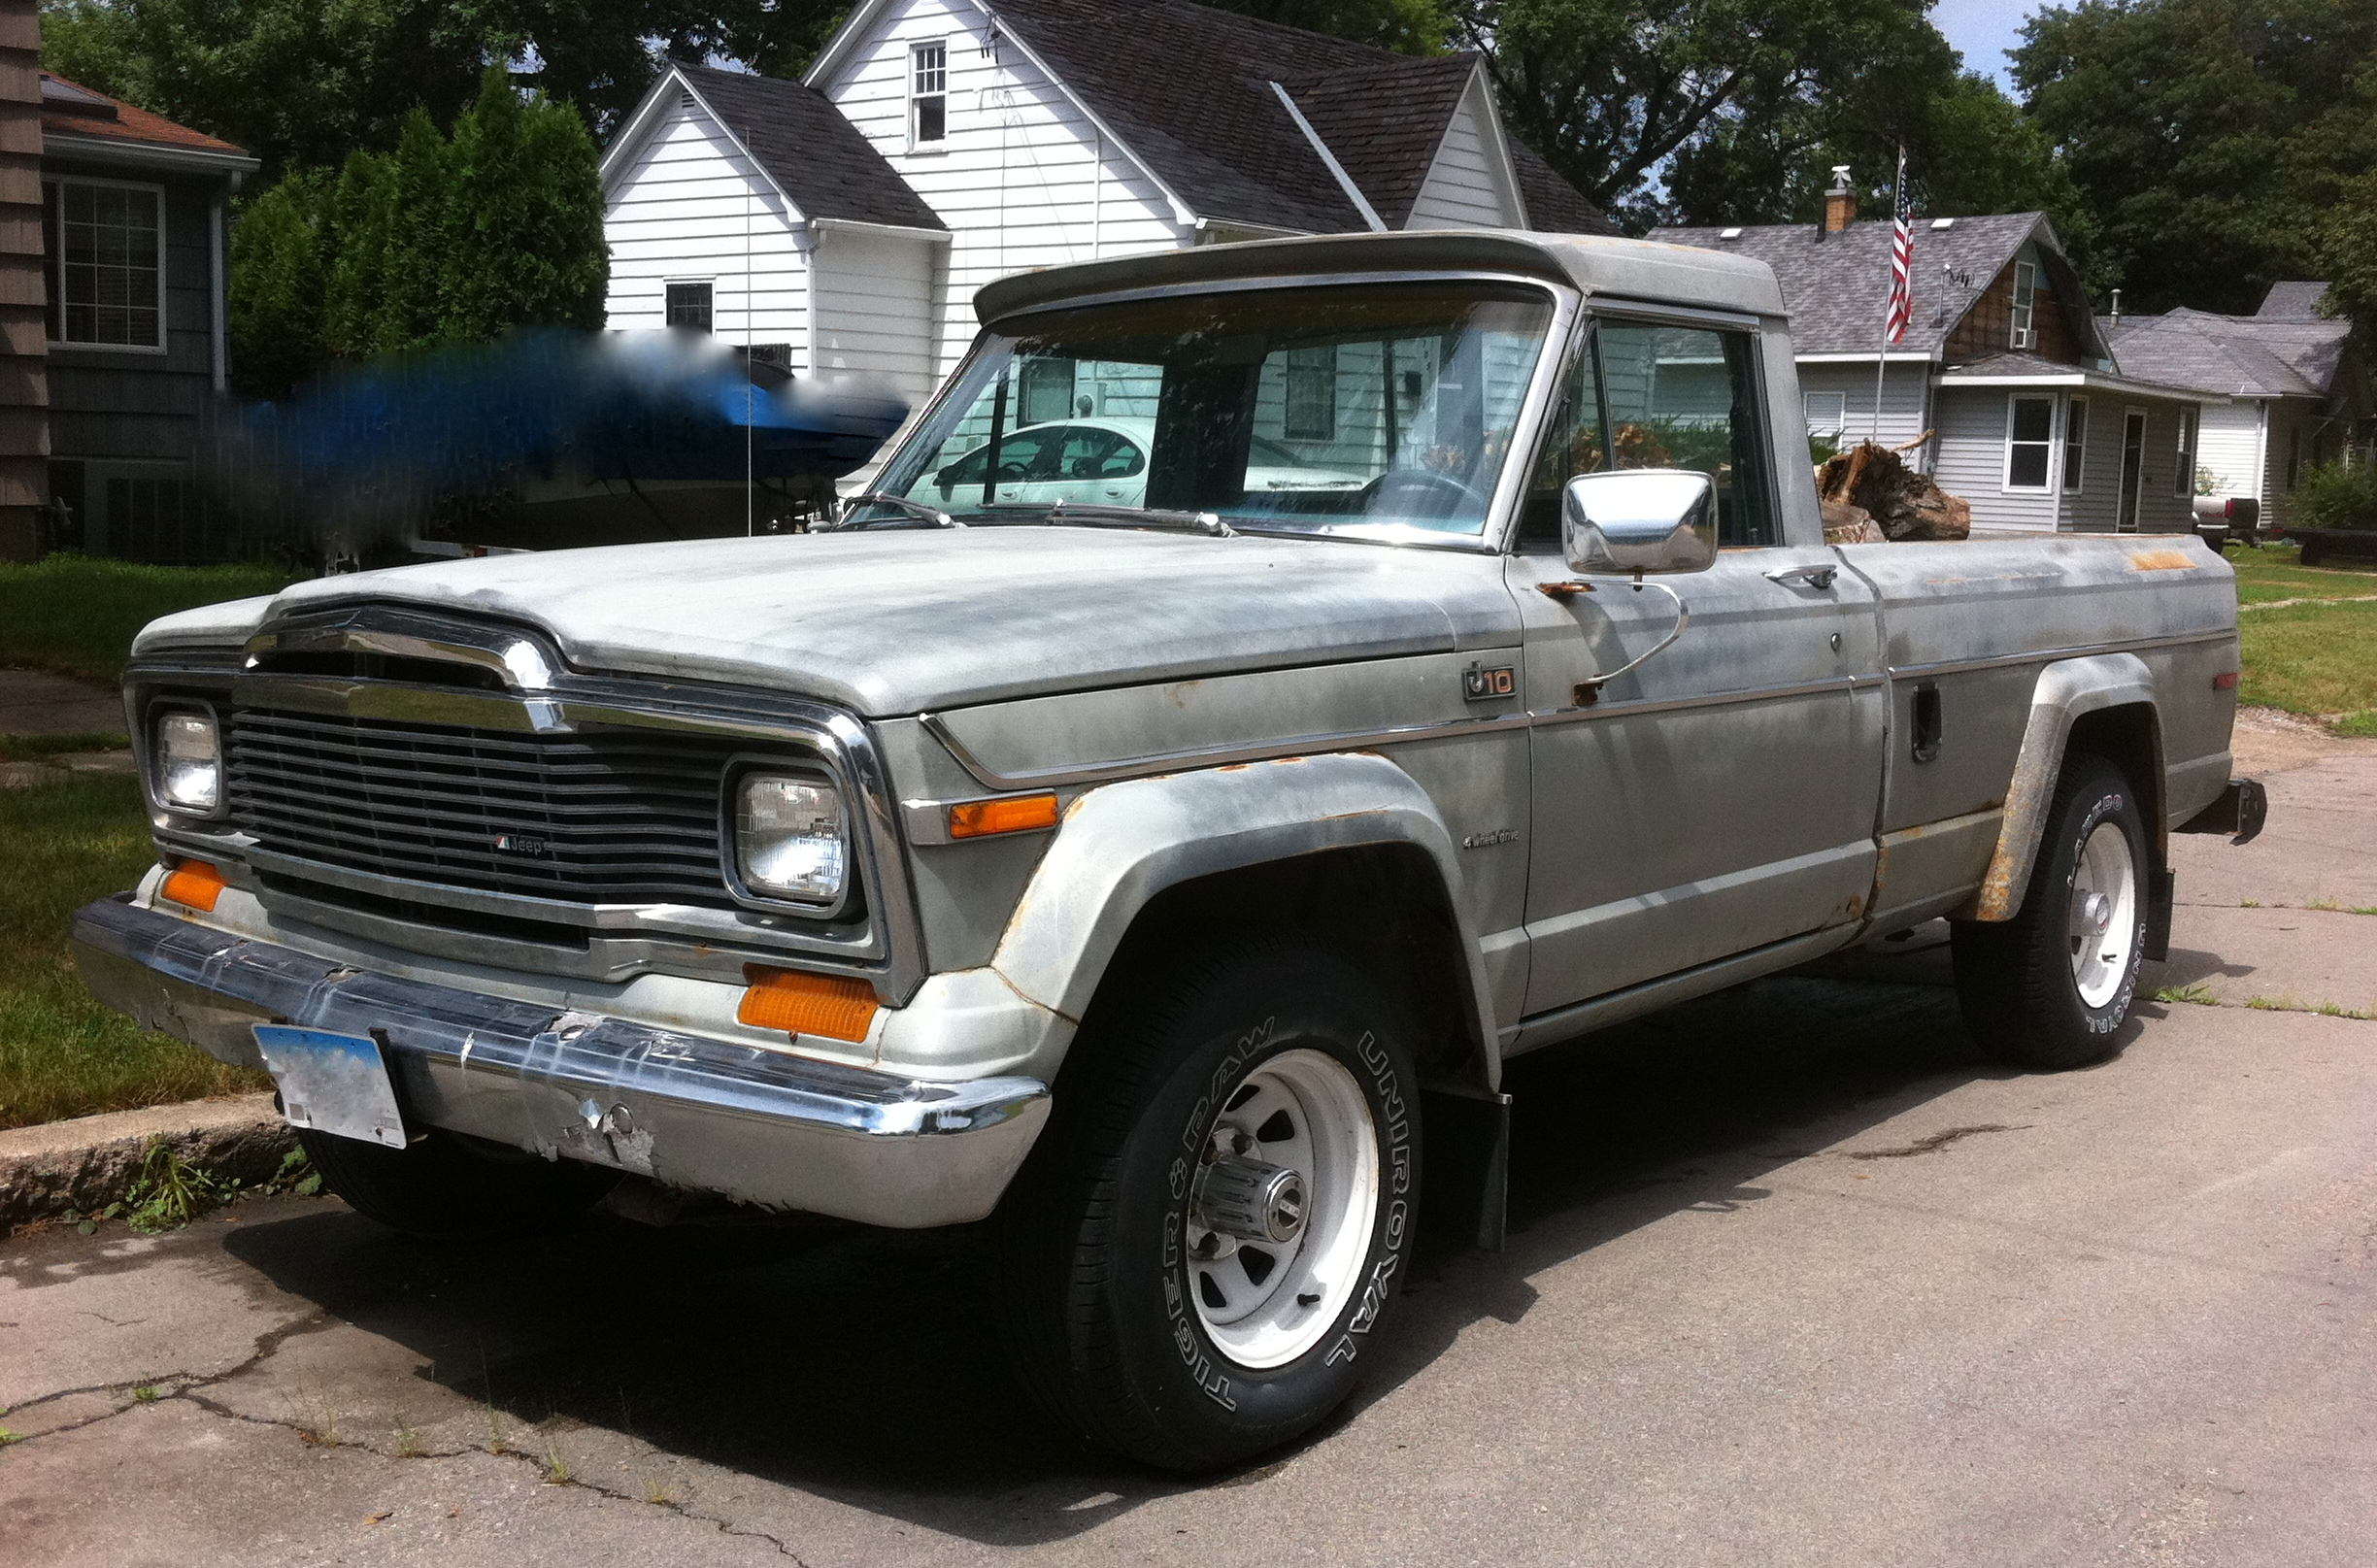 Jeep Wrangler Wiki >> File:Jeep J-10 pickup truck grey-fl.jpg - Wikimedia Commons